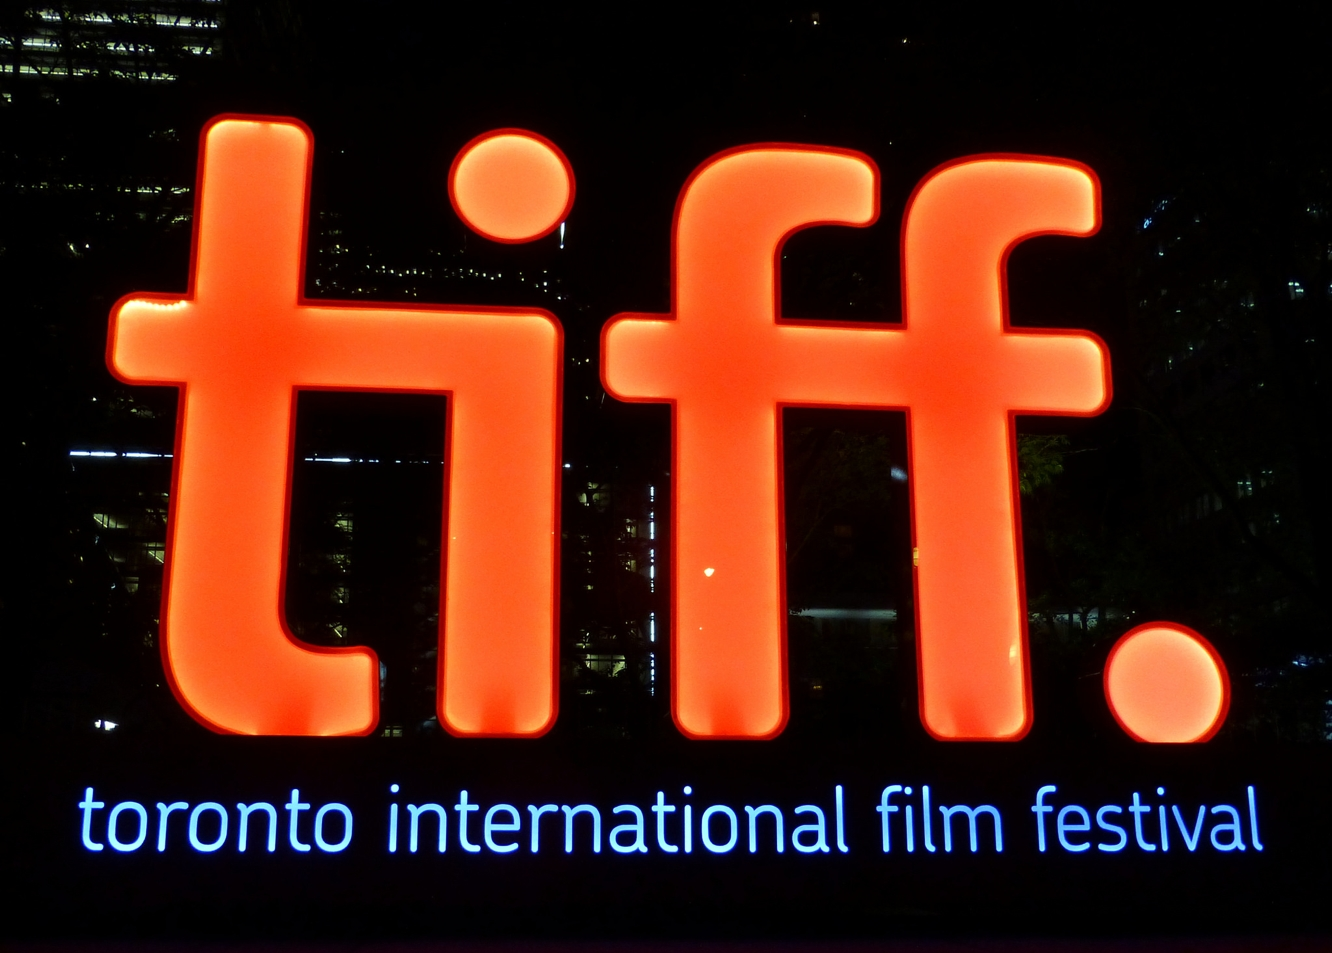 Apple's Worldwide Video chiefs to scope out content at Toronto International Film Festival